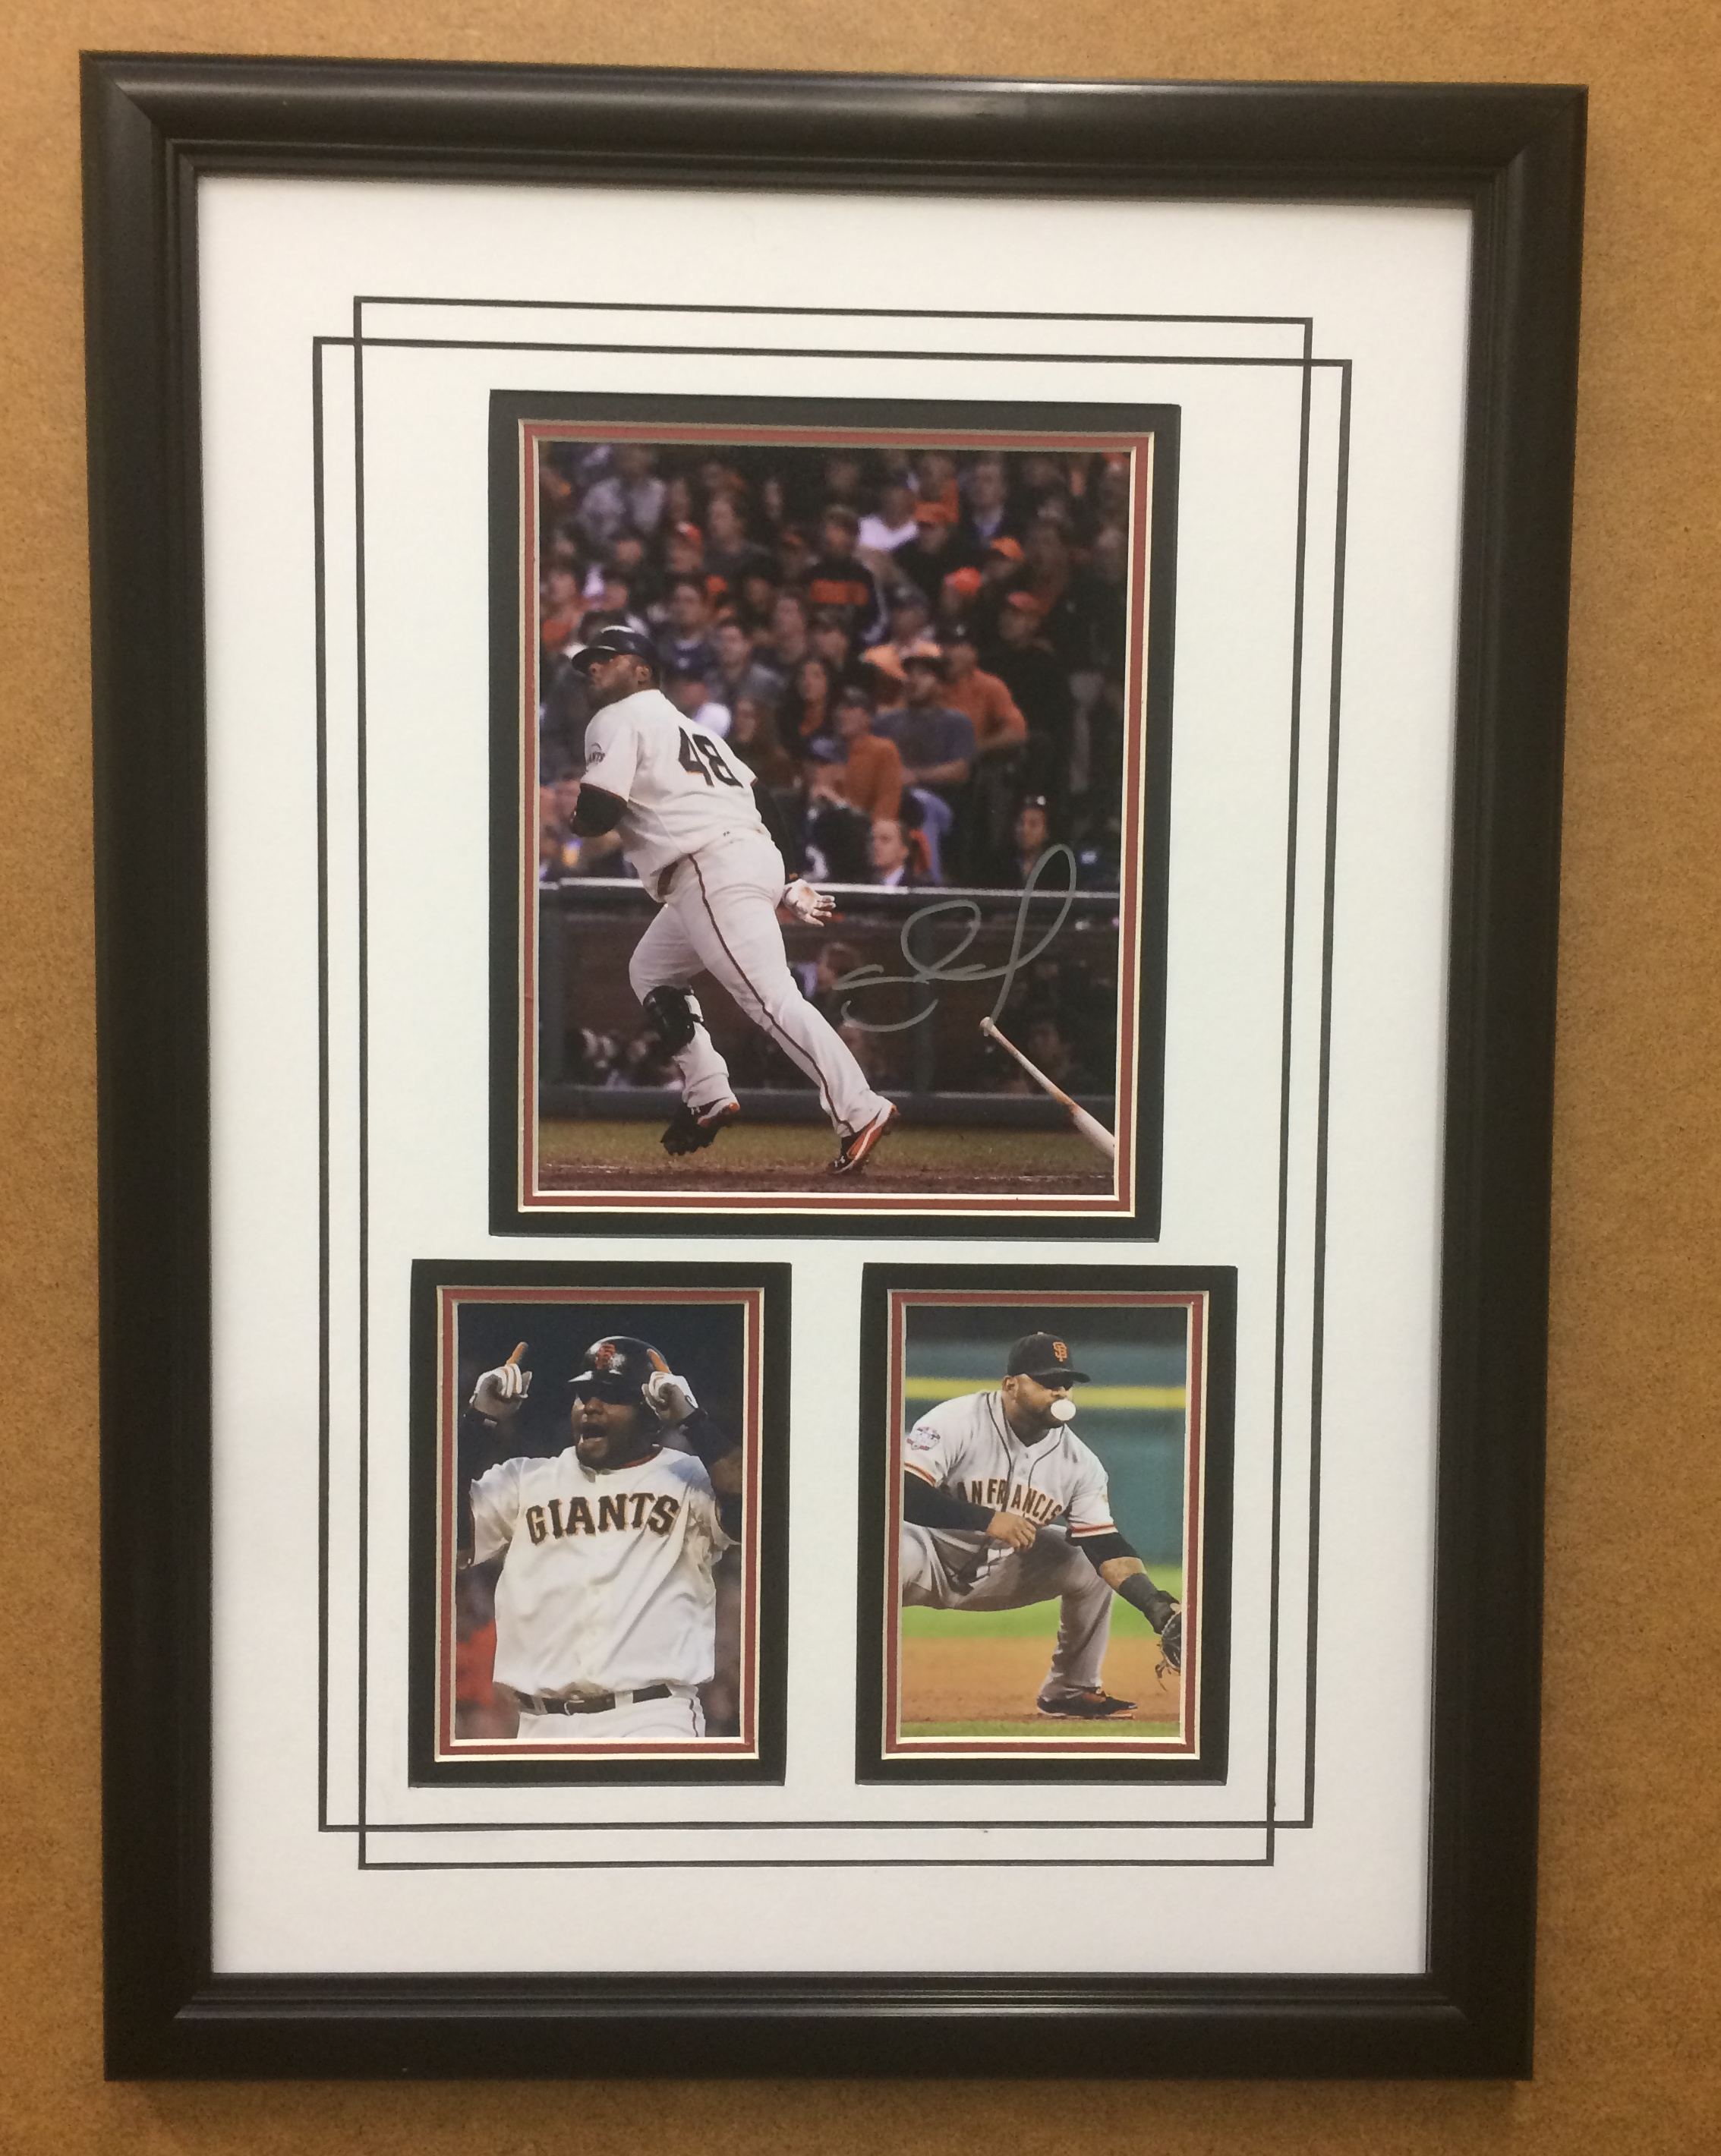 Pablo Sandoval S.F. Giants Hand-Signed 8x10 Commemorative